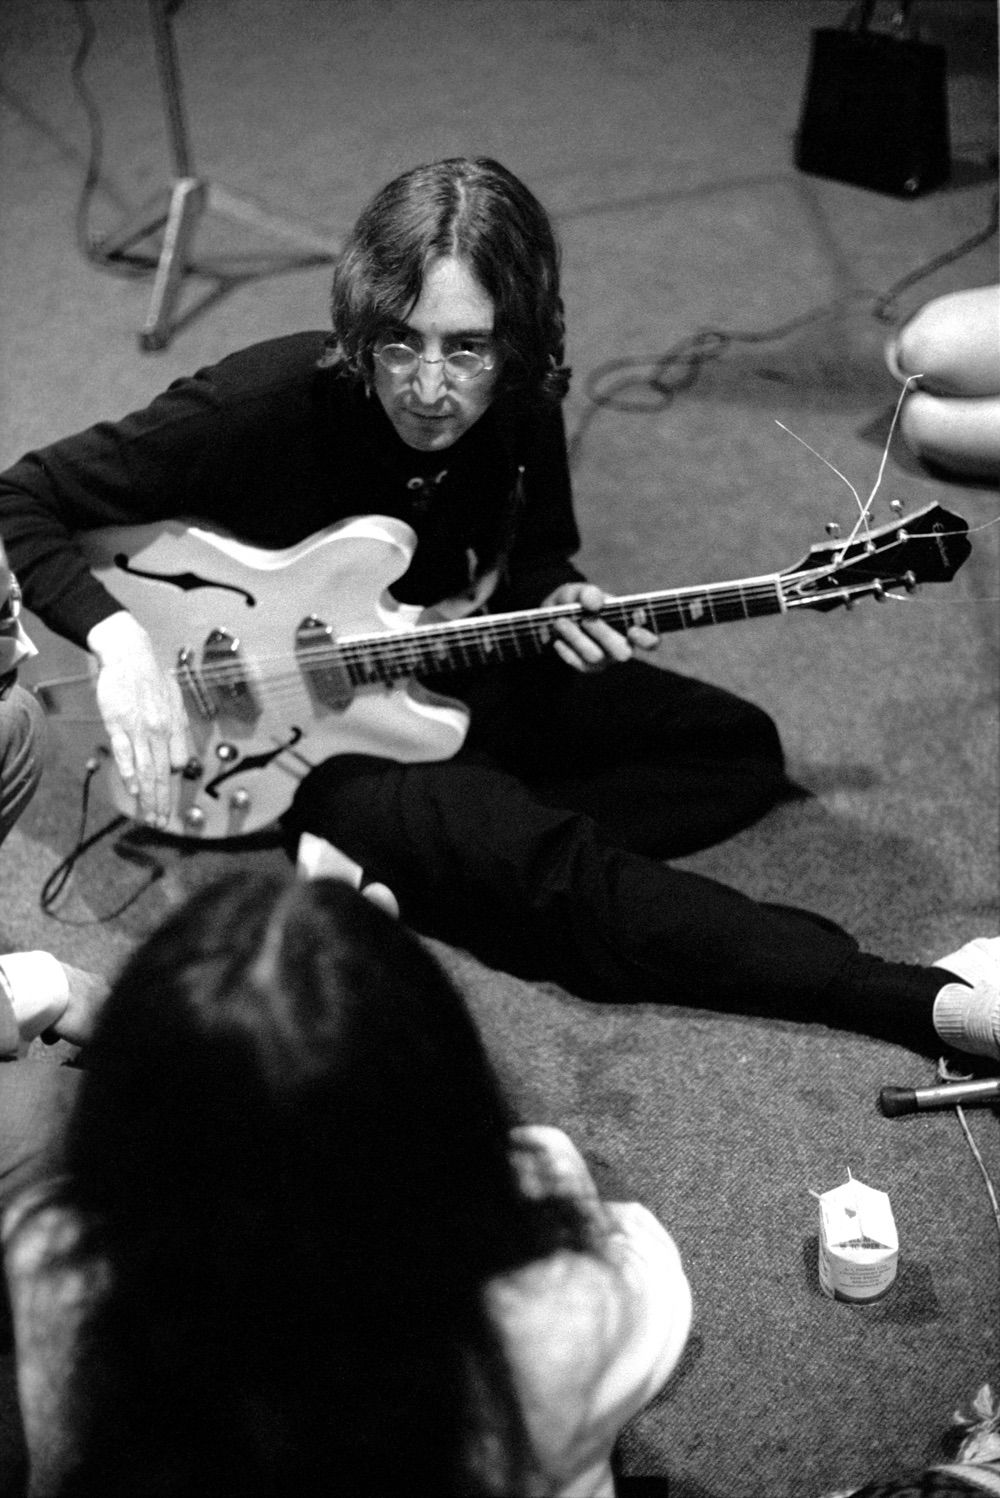 John Lennon and Yoko Ono at a White Album session, 1968.